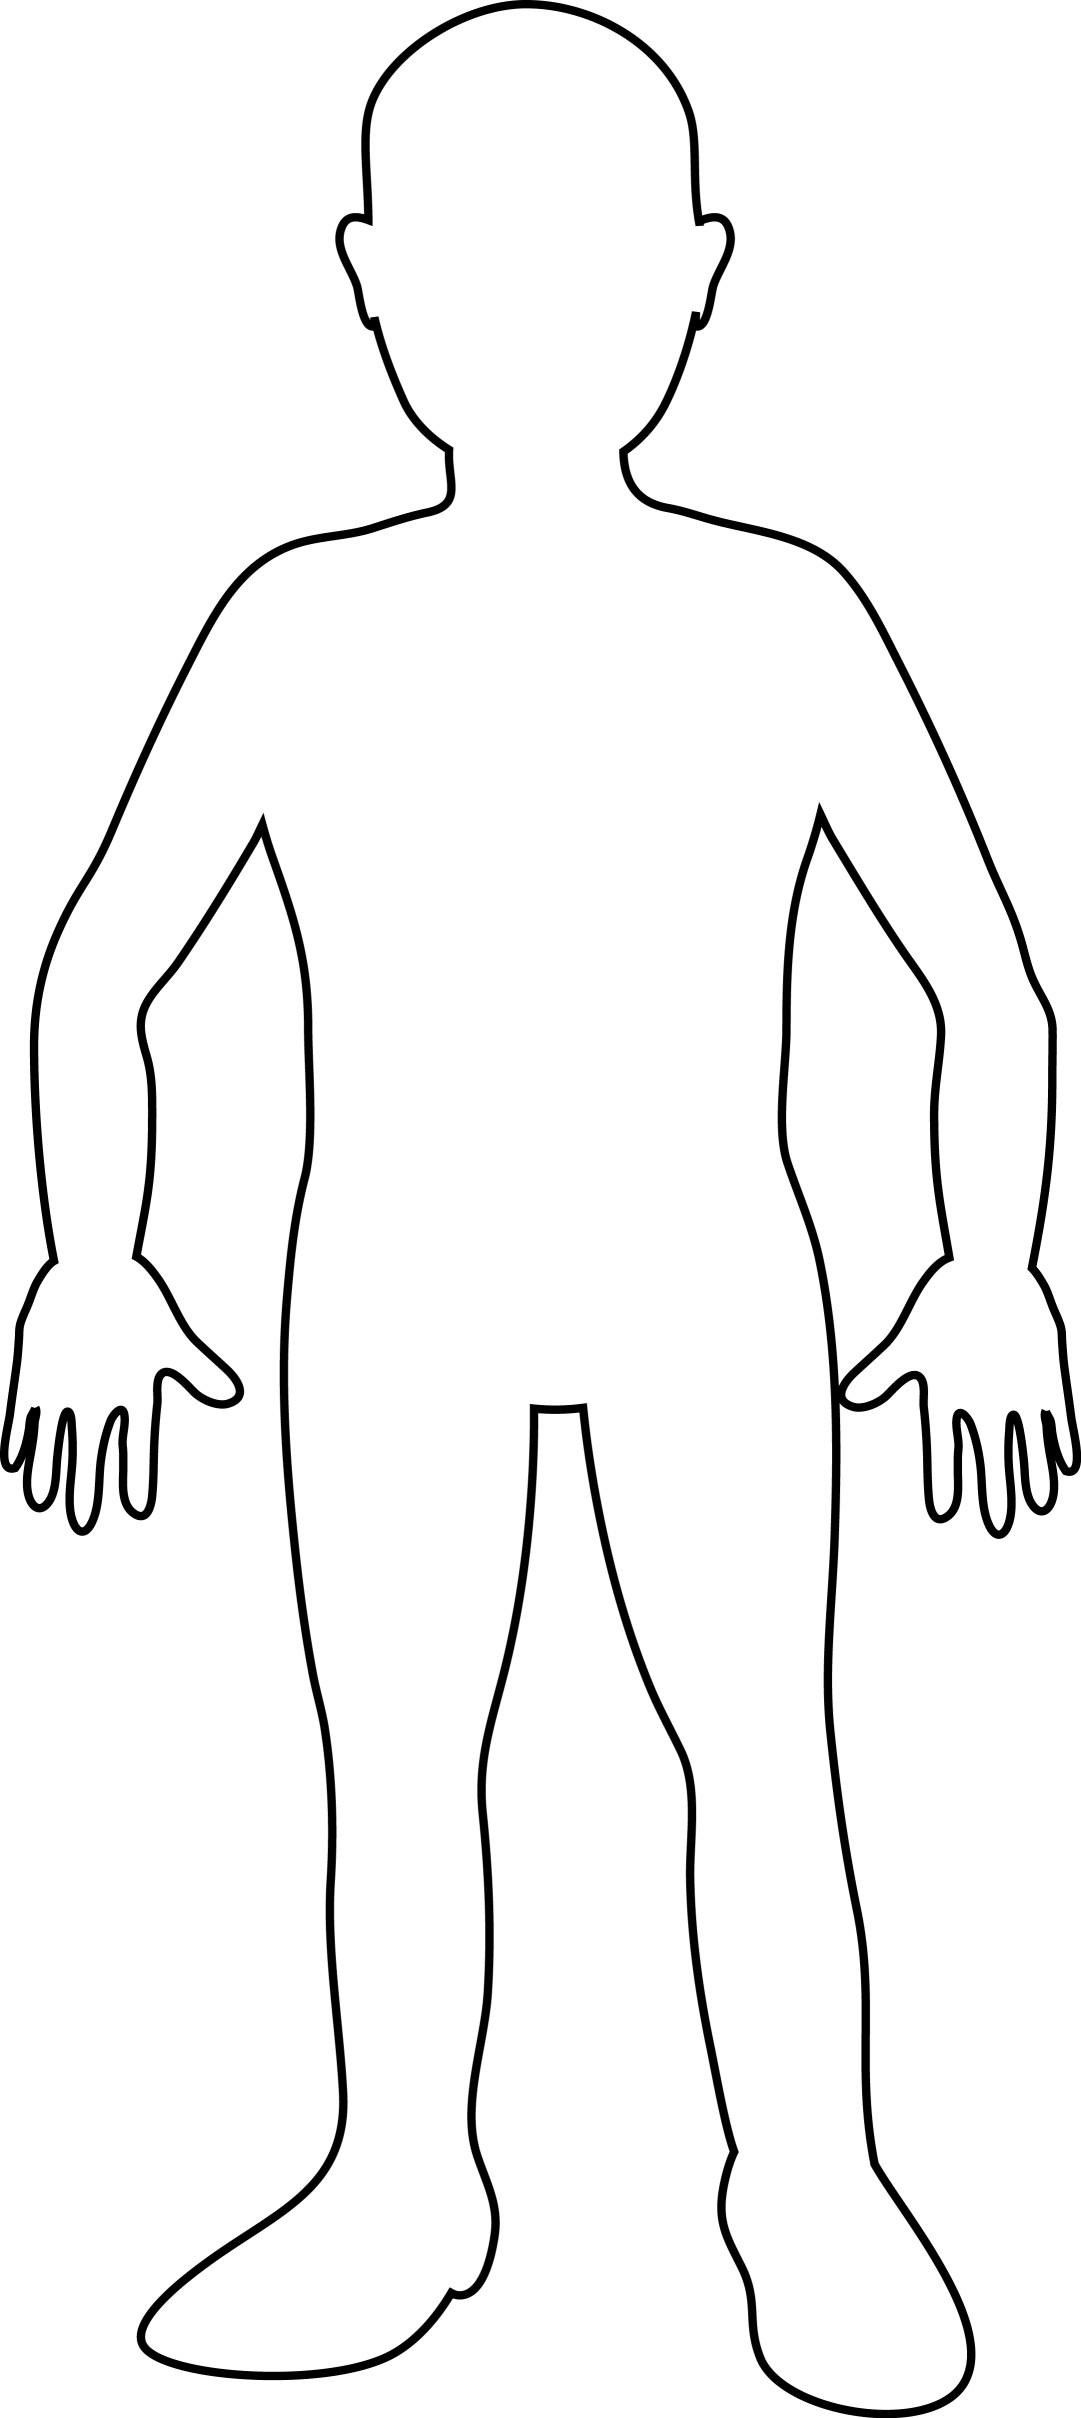 10 Child Outline Coloring Page Body Outline Free Human Body Human Body Activities